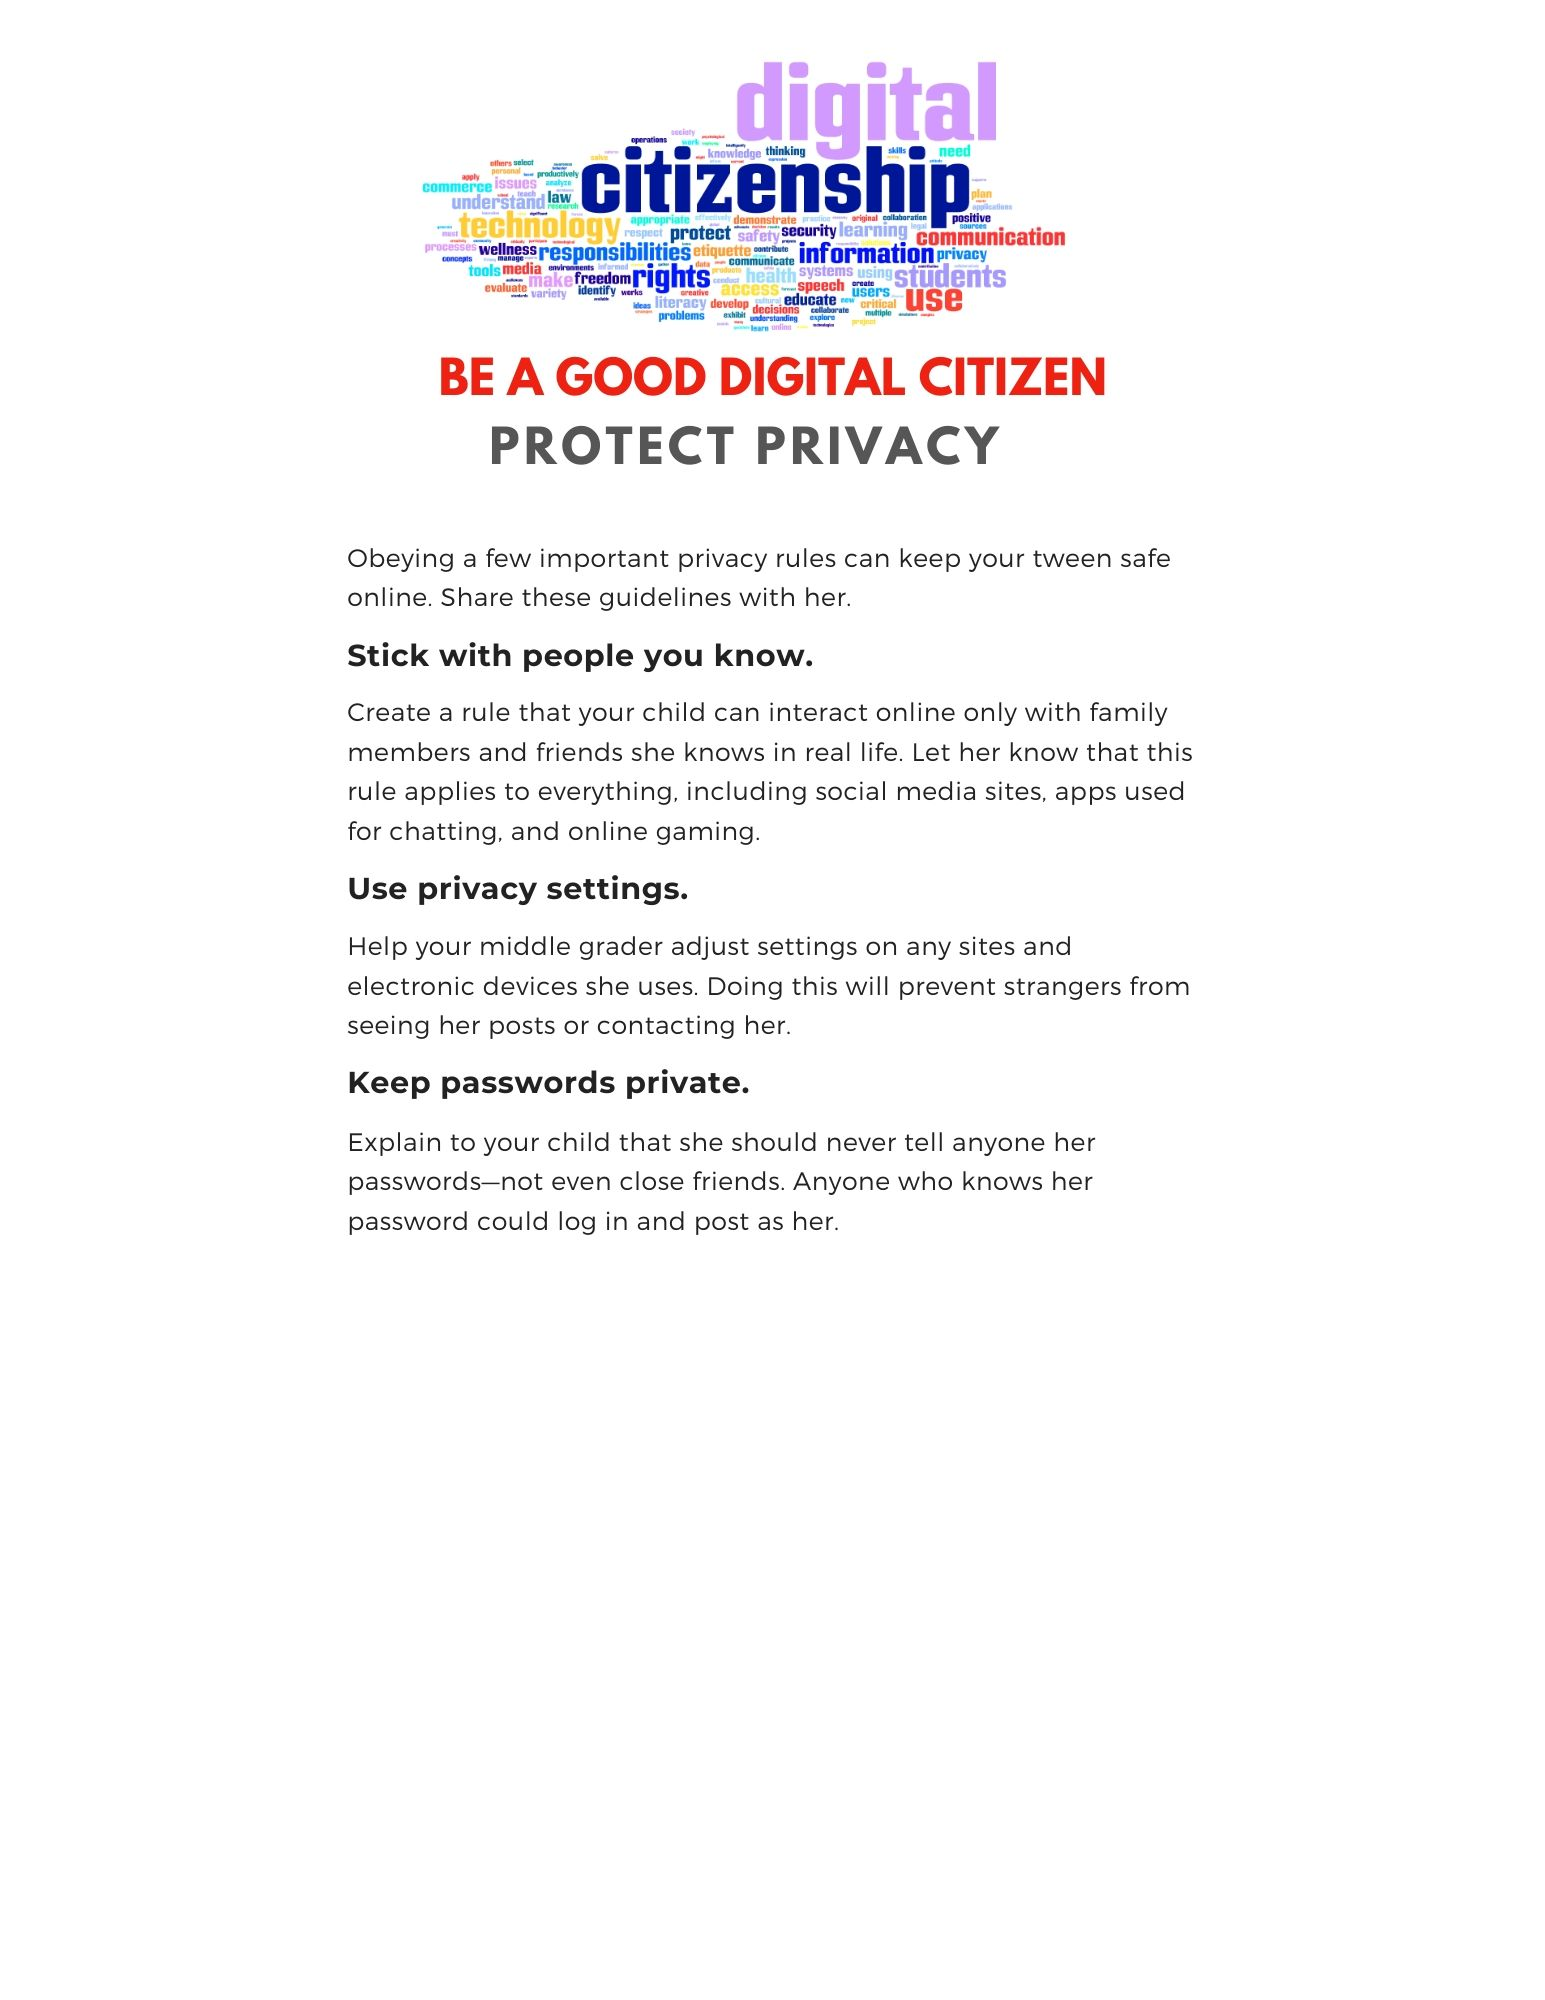 1580314286-digital_citizenship_protect_privacy